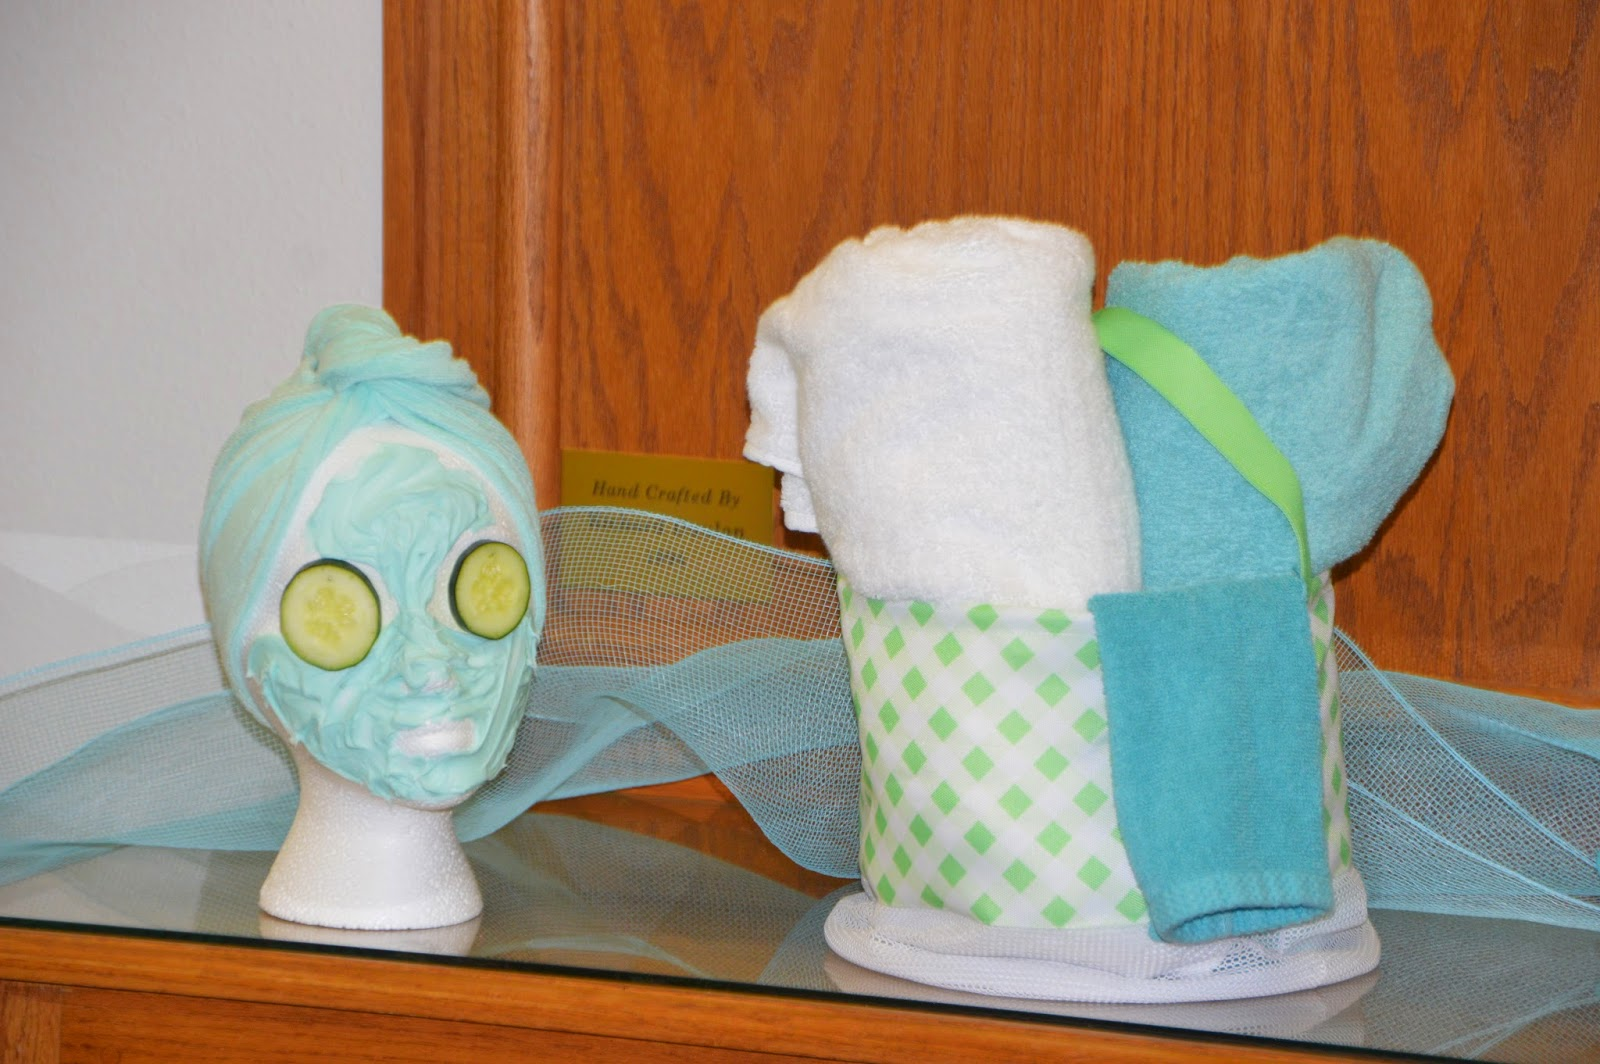 The Foyer Of Building Had More Decorated Wig Heads Plus These Pretty Easter Baskets From Target Made Into Spa